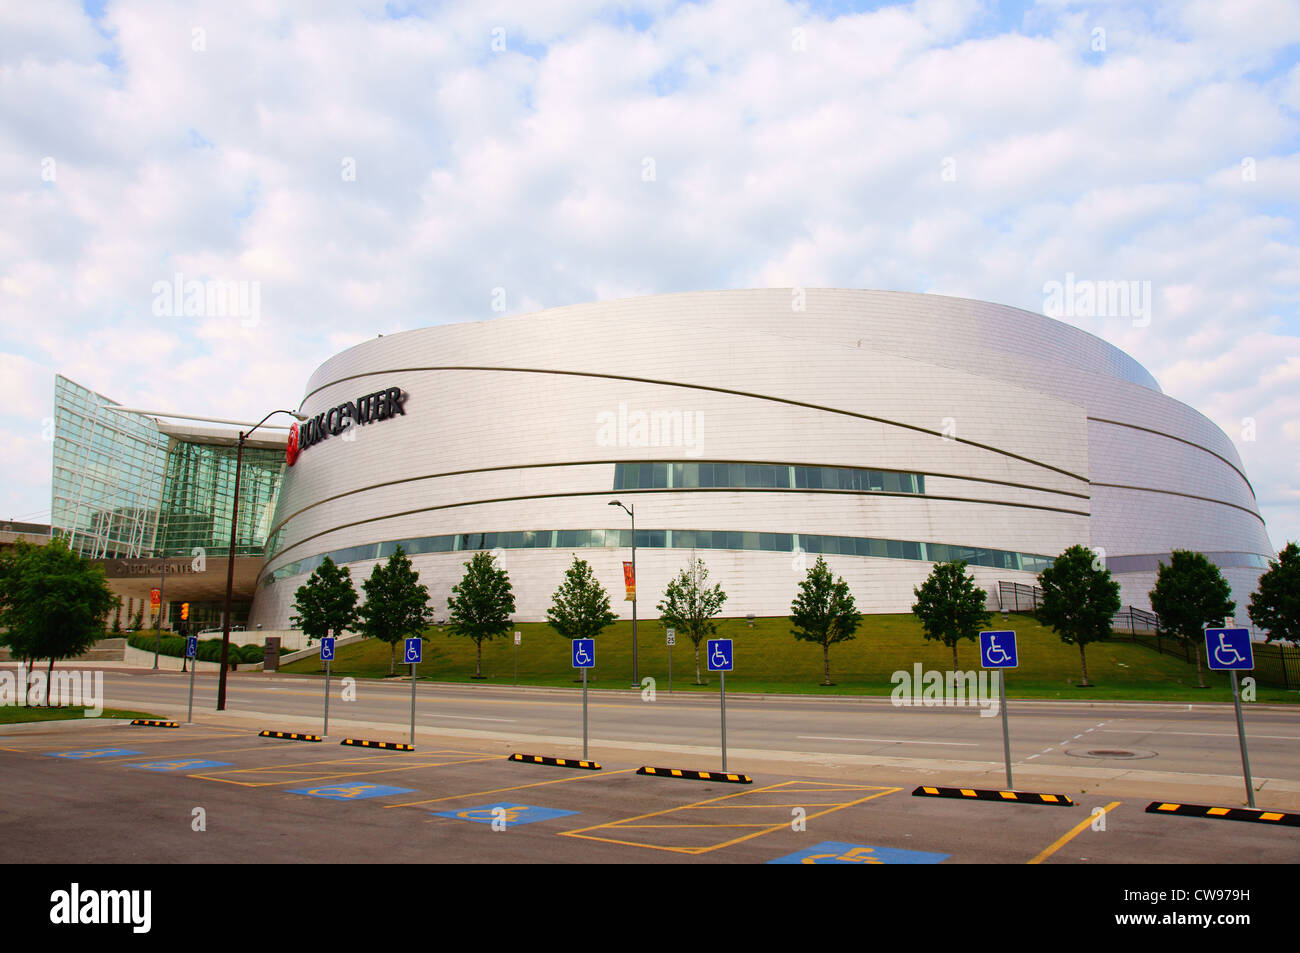 bok convention center tulsa ok architecture assembly balance beauty building composition construction contour - Stock Image